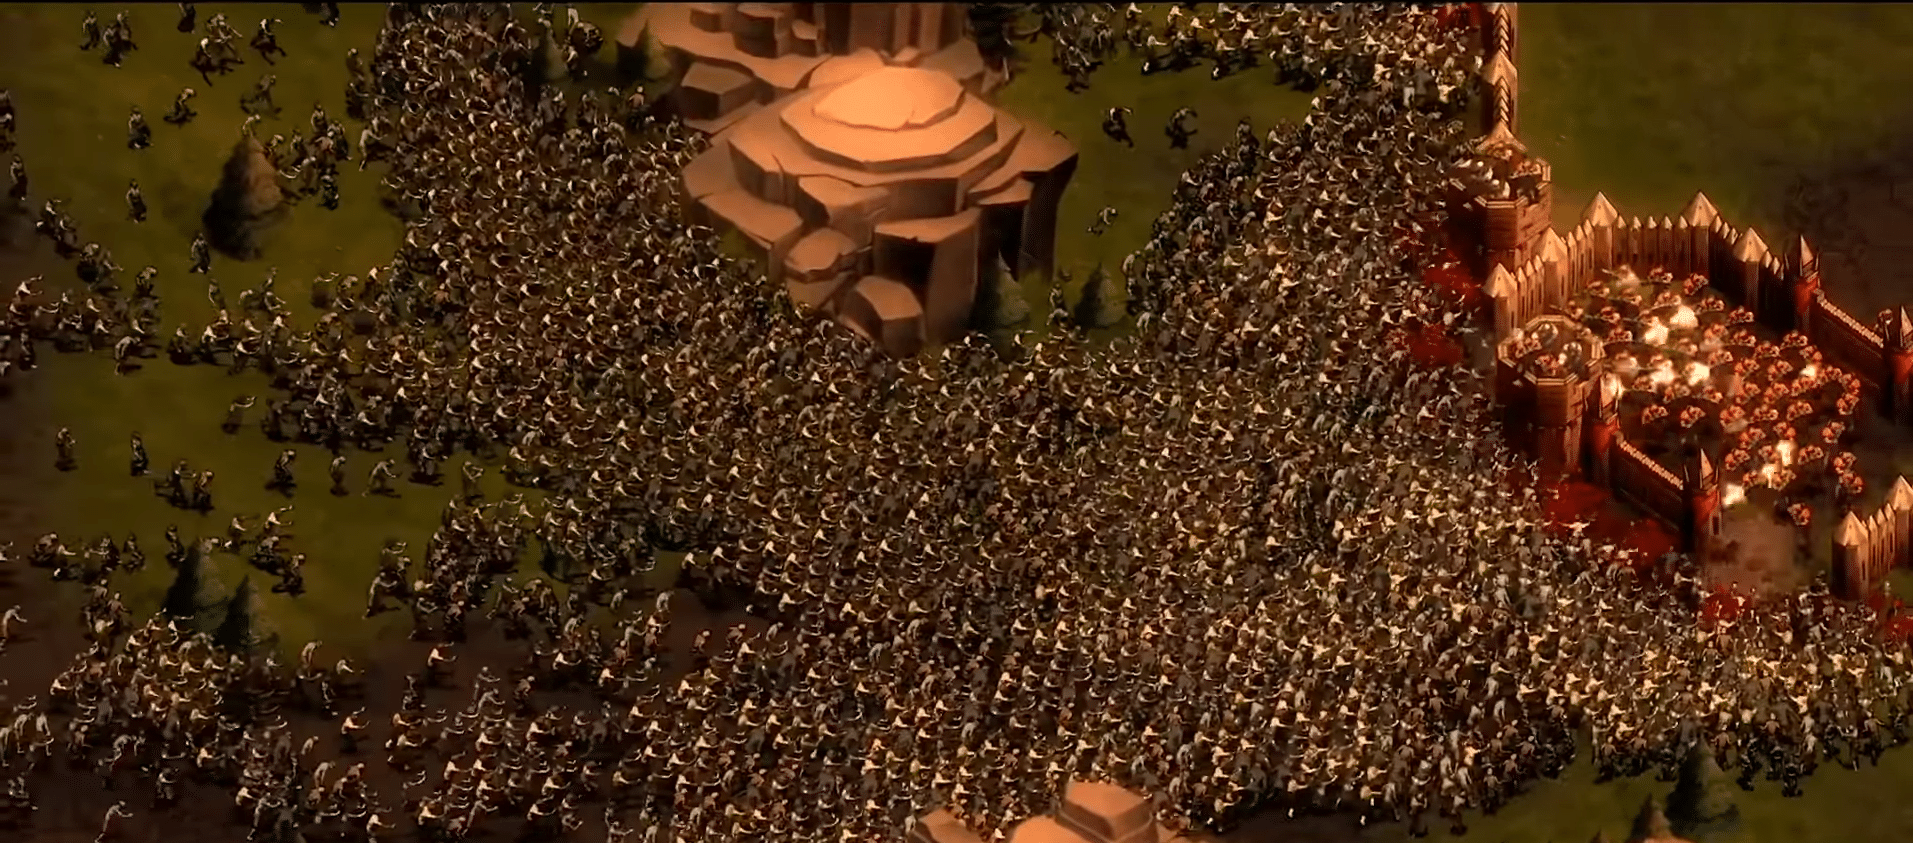 They are billions deadhorde